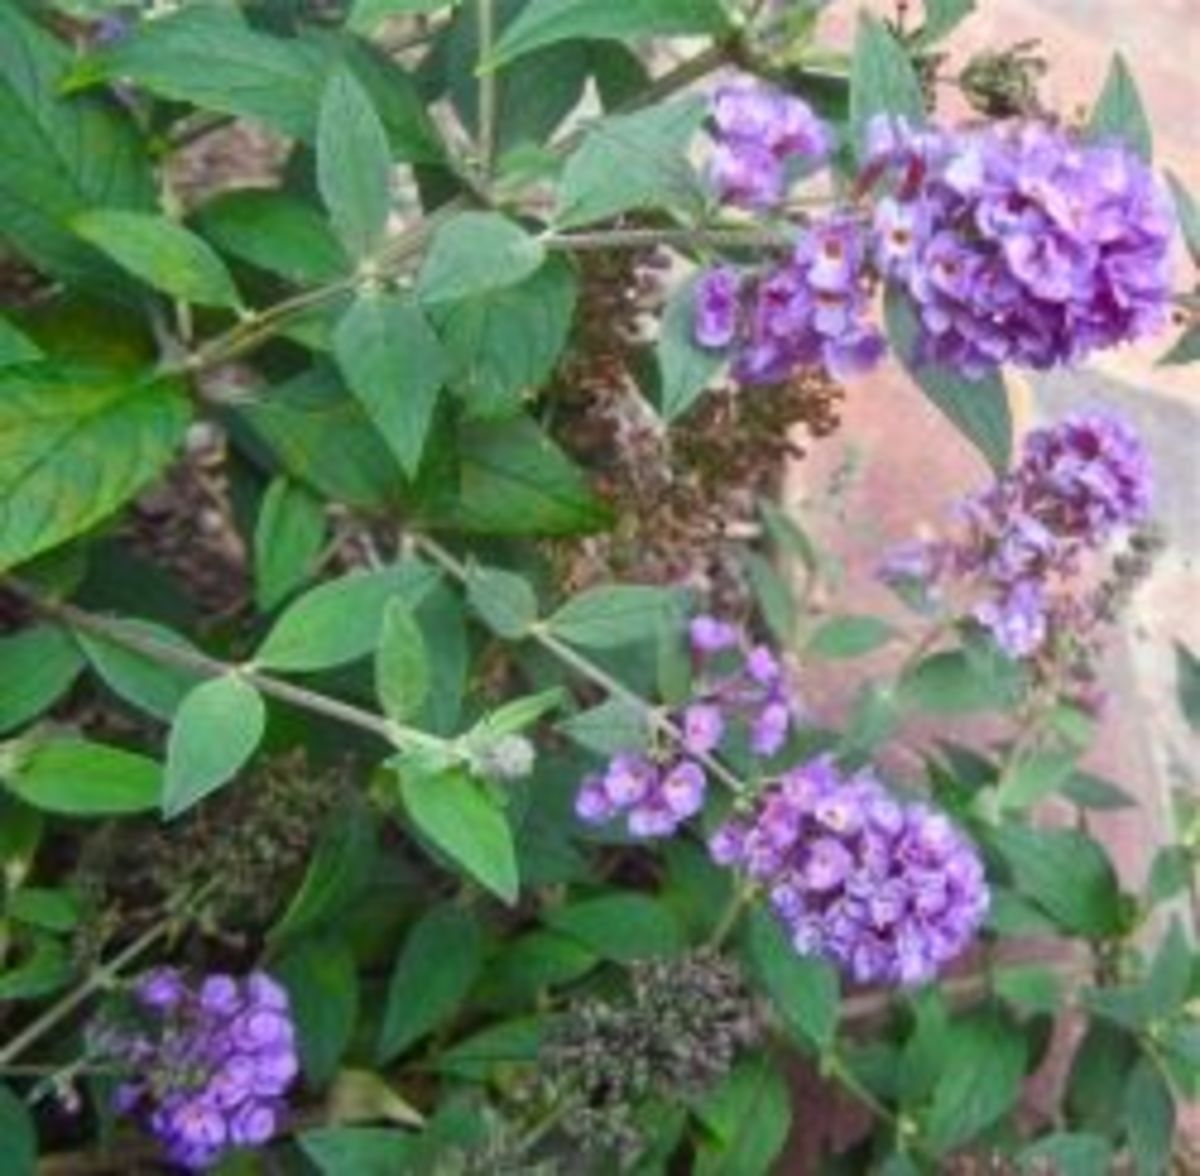 A dwarf Buddleia in our garden. Copyright 2012 CJS. All Rights Reserved.